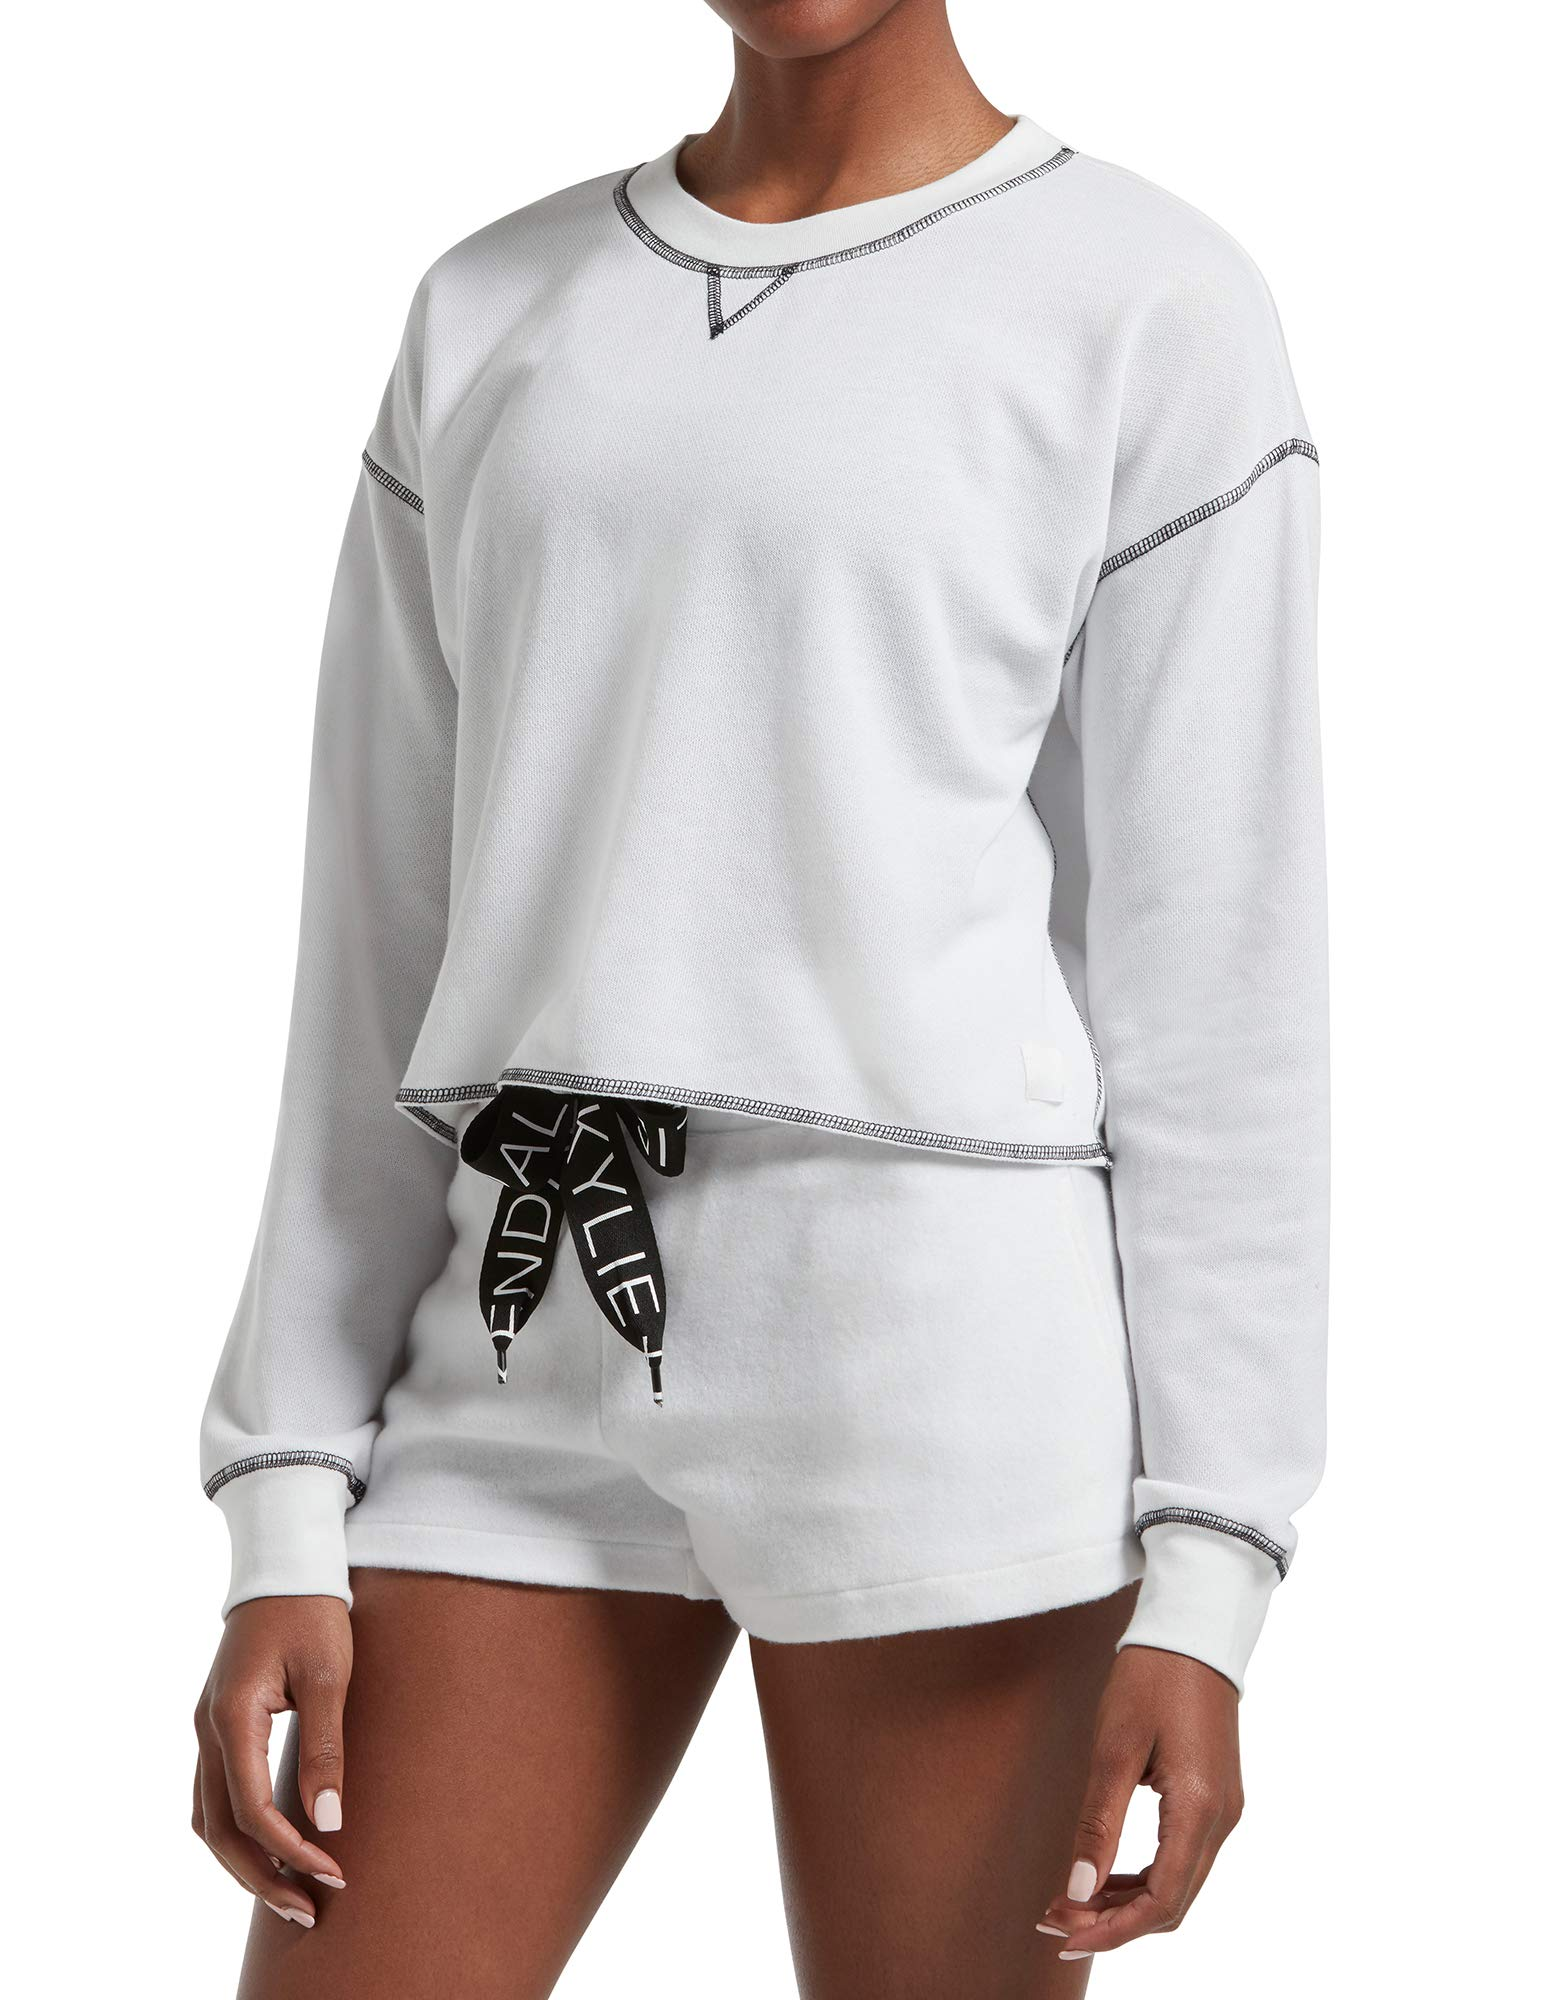 Kendall + Kylie Women's Oversized Long Sleeve Cropped Tee